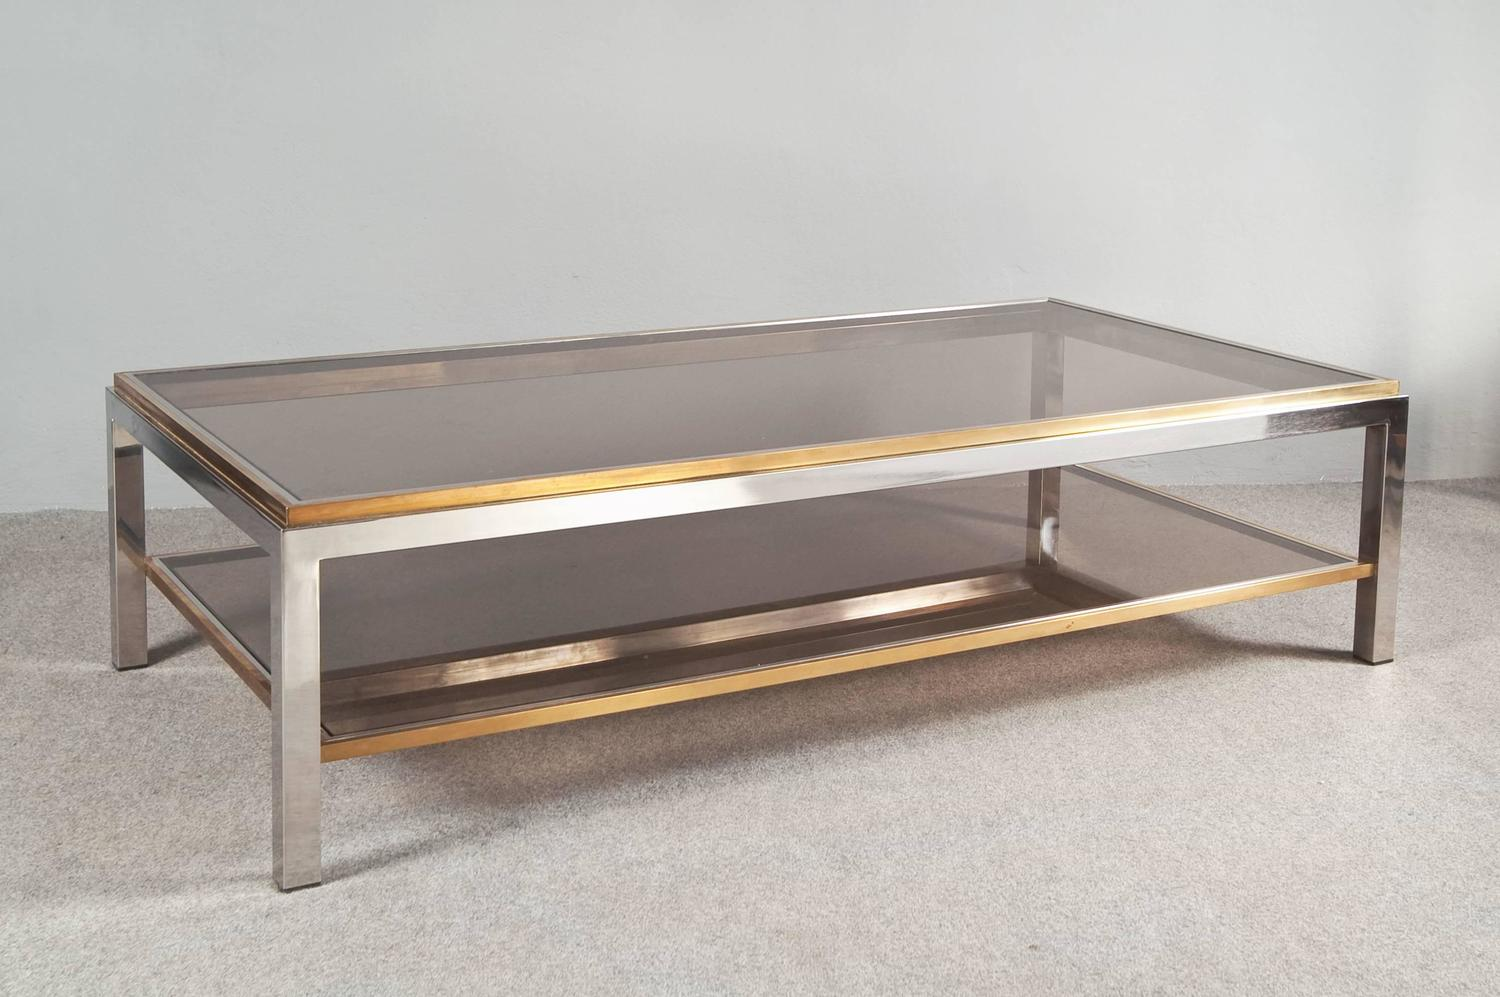 Flaminia coffee table by willy rizzo at 1stdibs for Table willy rizzo